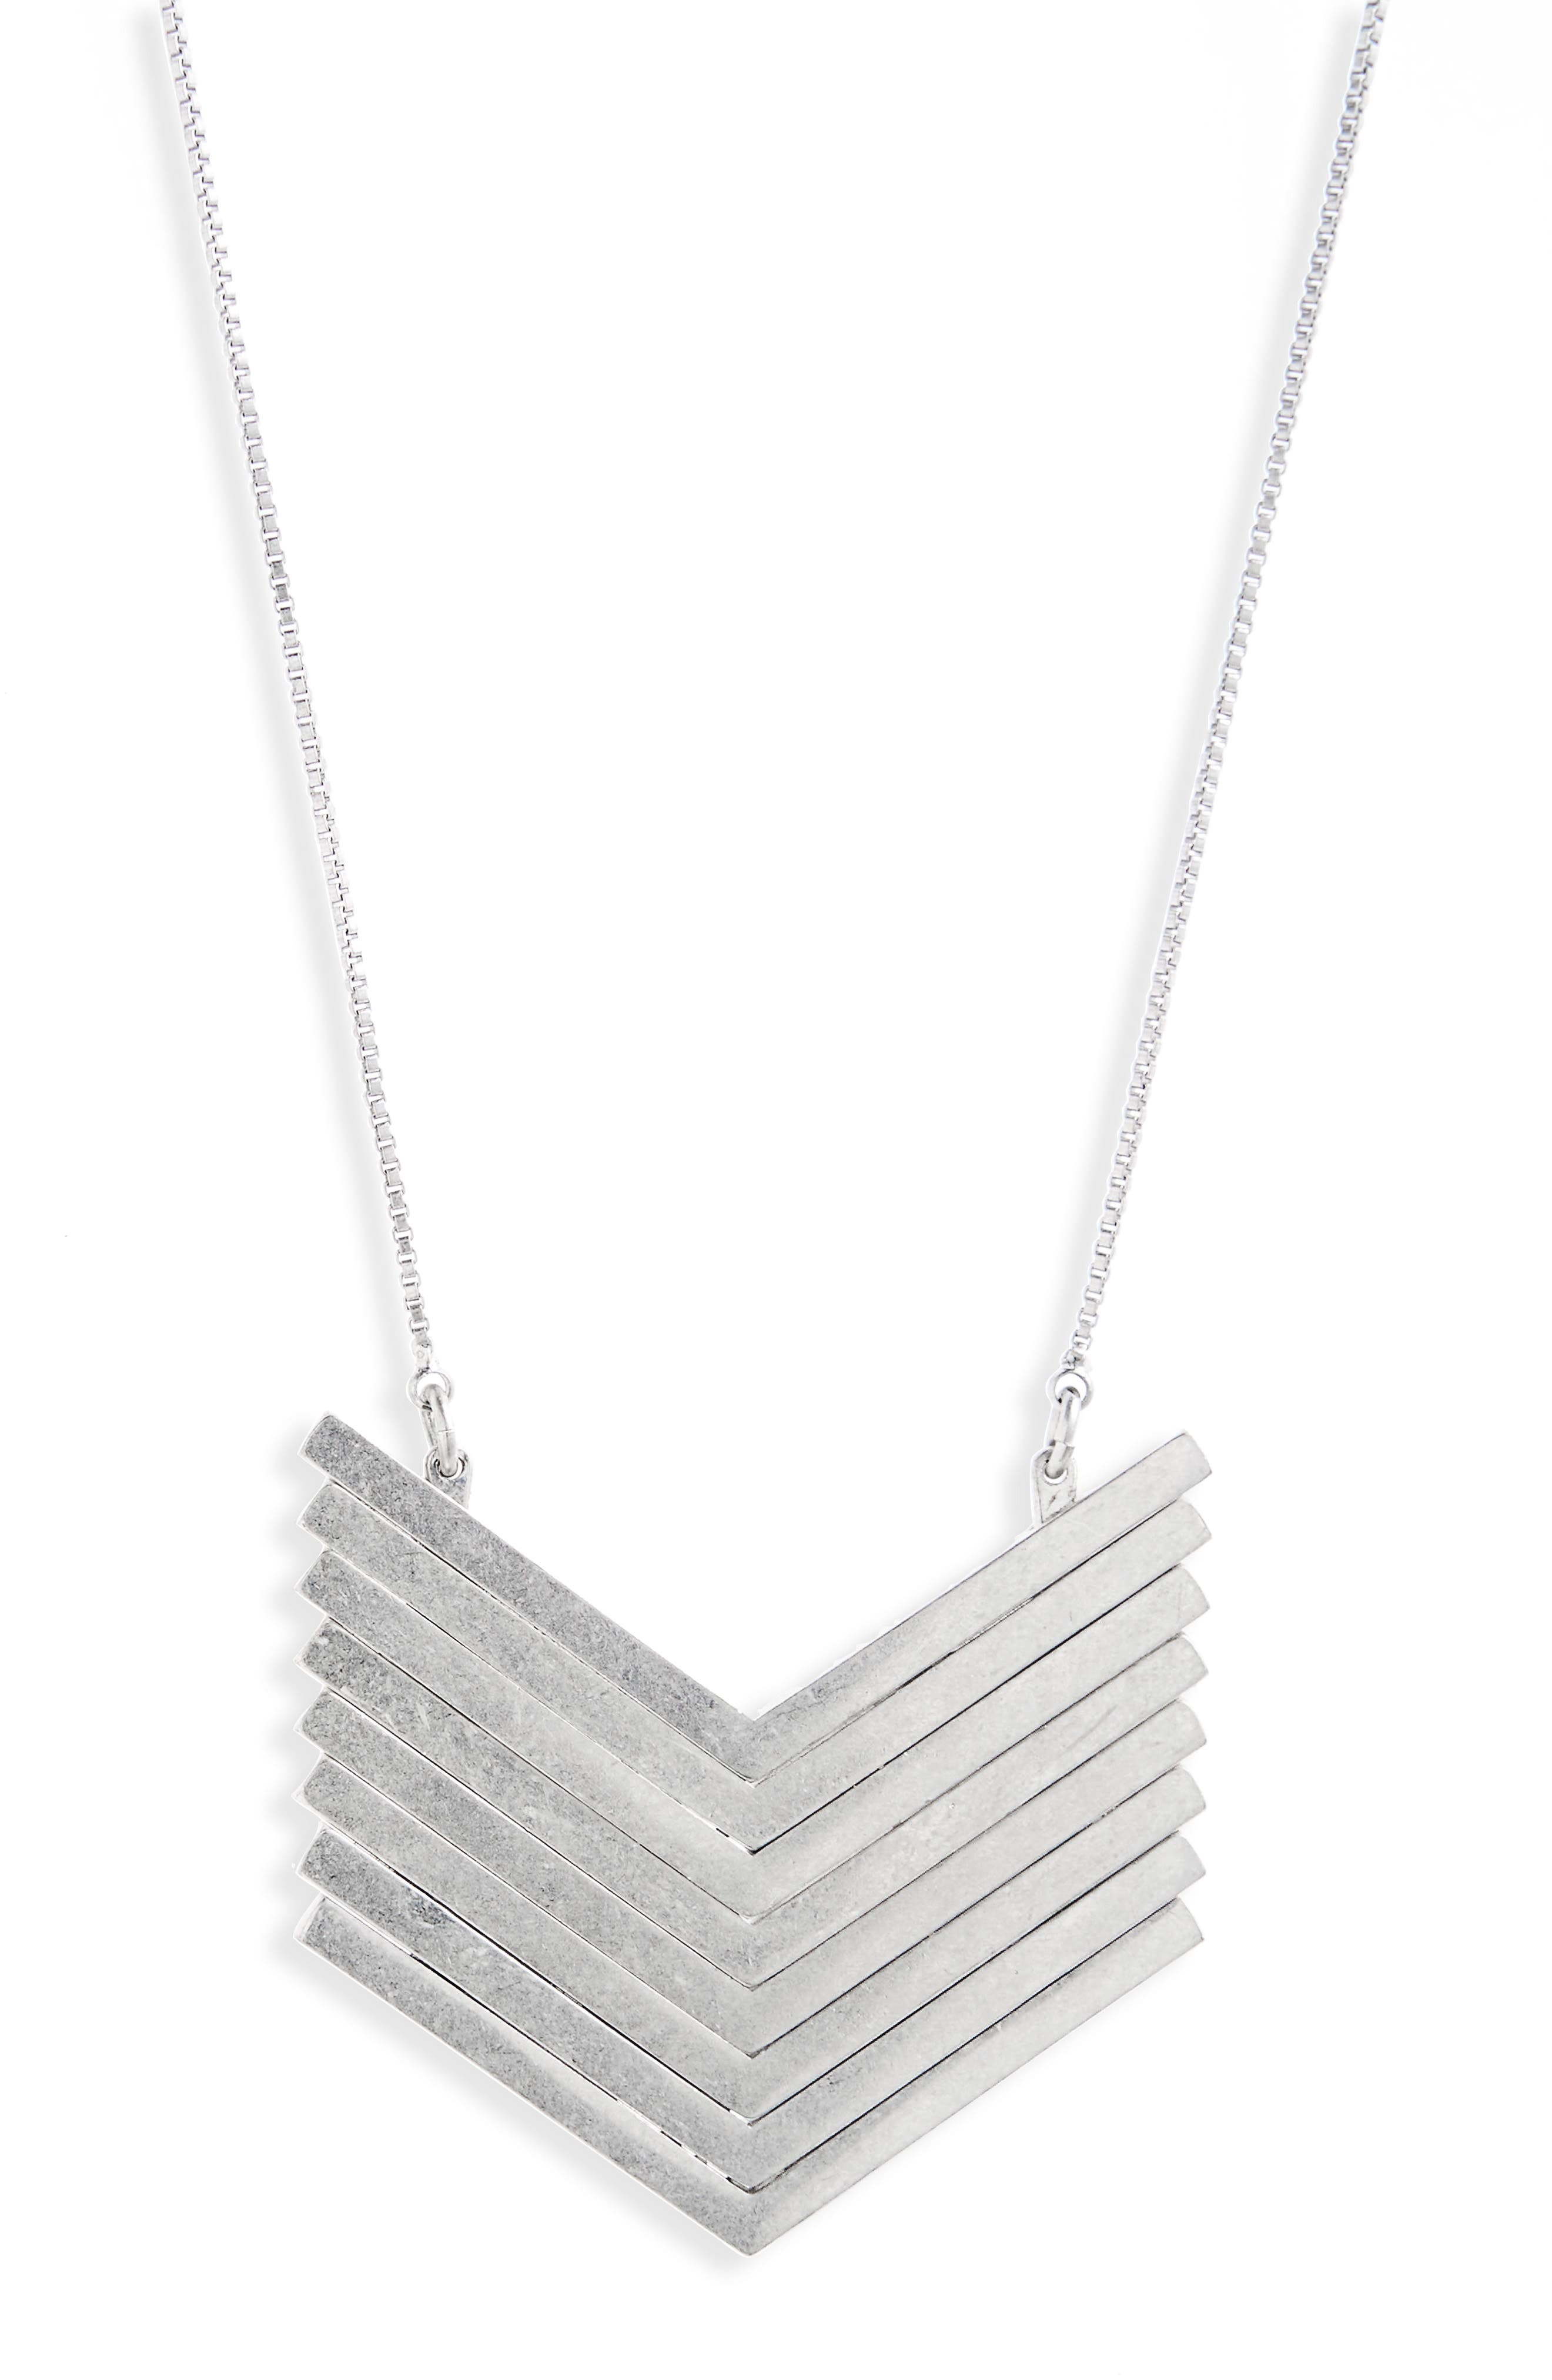 MADEWELL, Arrowstack Necklace, Main thumbnail 1, color, LIGHT SILVER OX